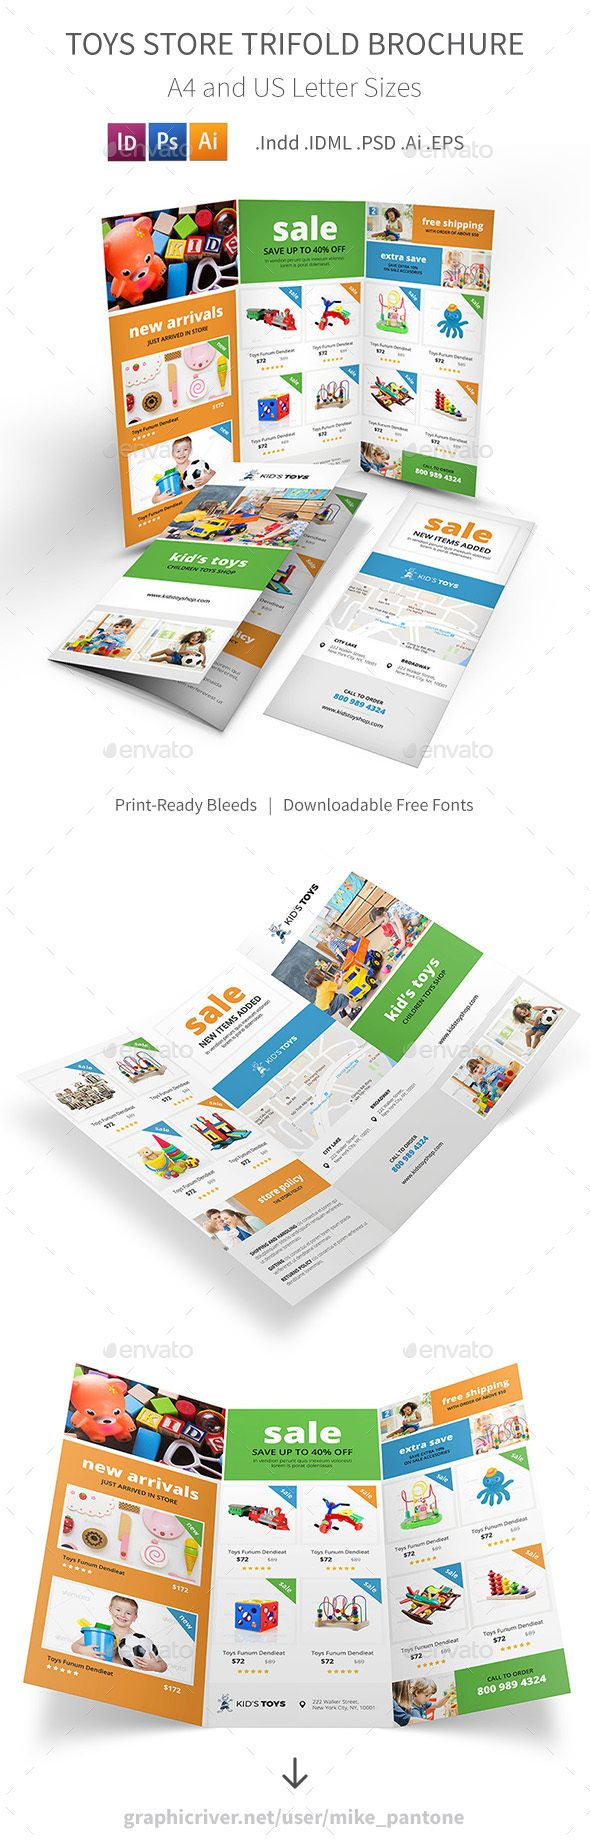 Toys Store Trifold Brochure   Brochures and Brochure template